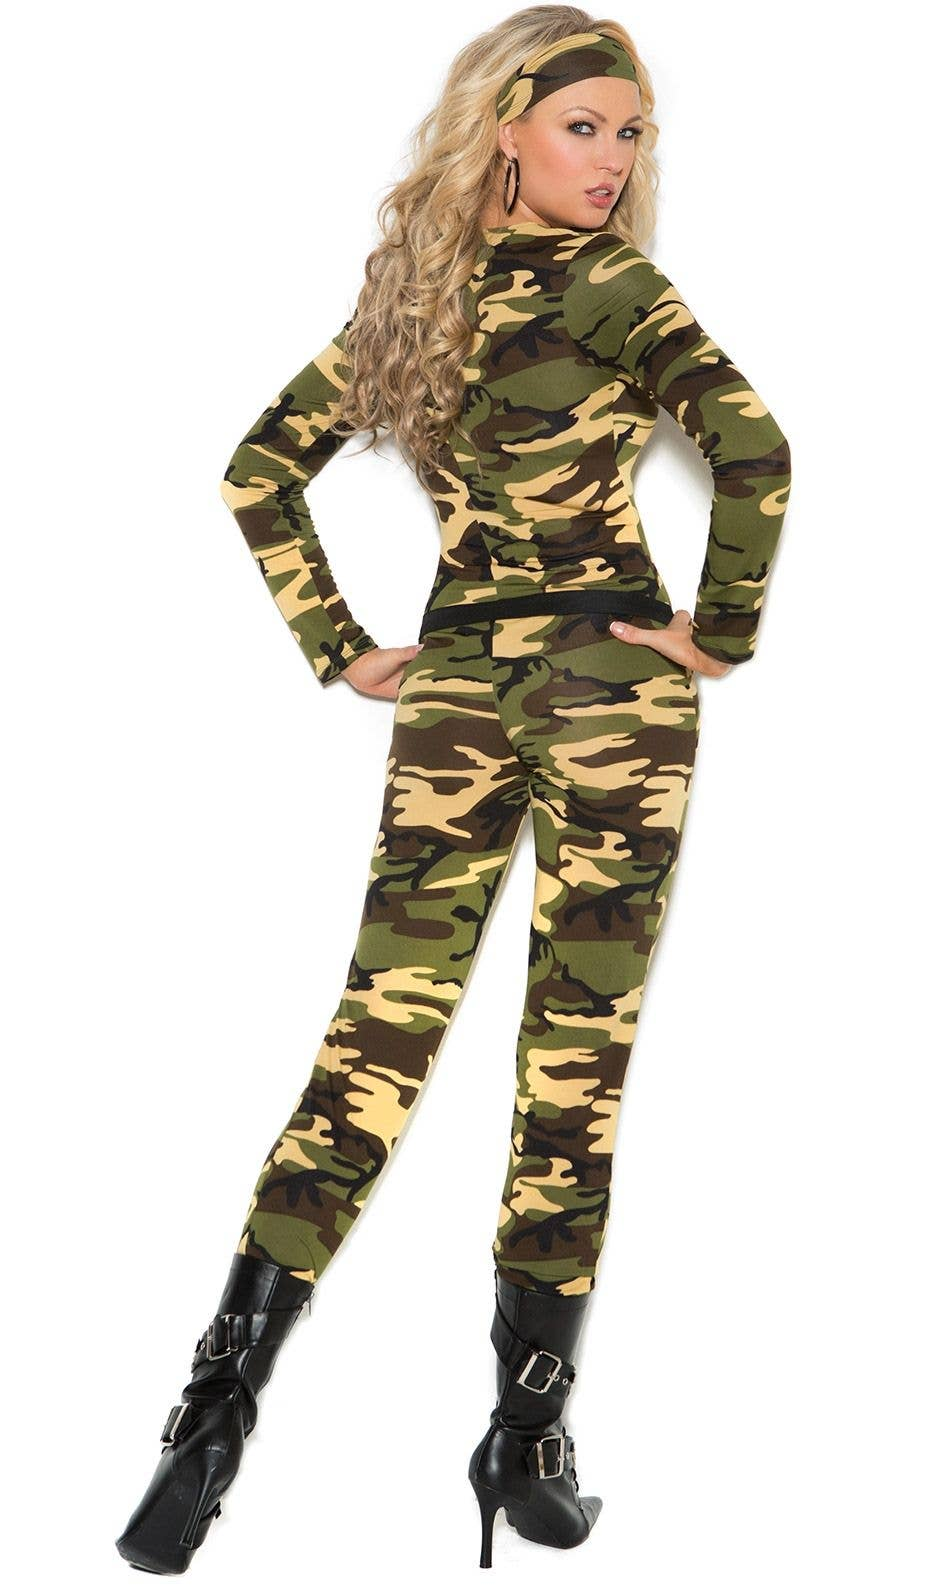 MENS ARMY FANCY DRESS OUTFIT CAMO SOLDIER COSTUME ADULTS MILITARY UNIFORM